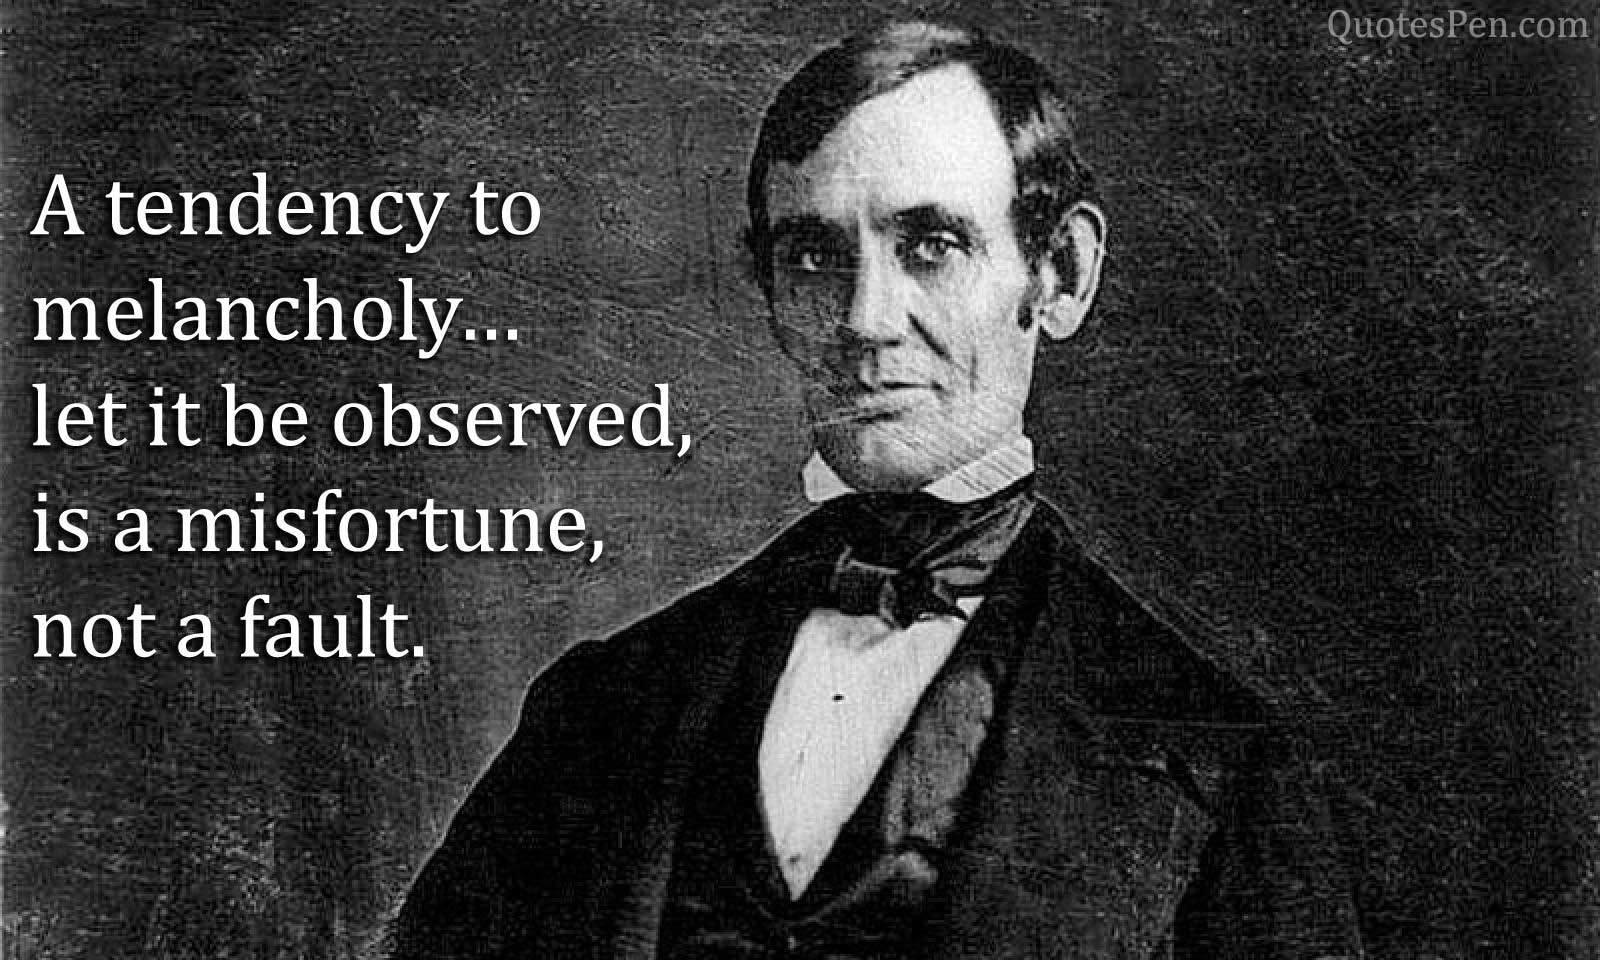 a-tendency-to-melancholy-Abraham Lincoln-quote